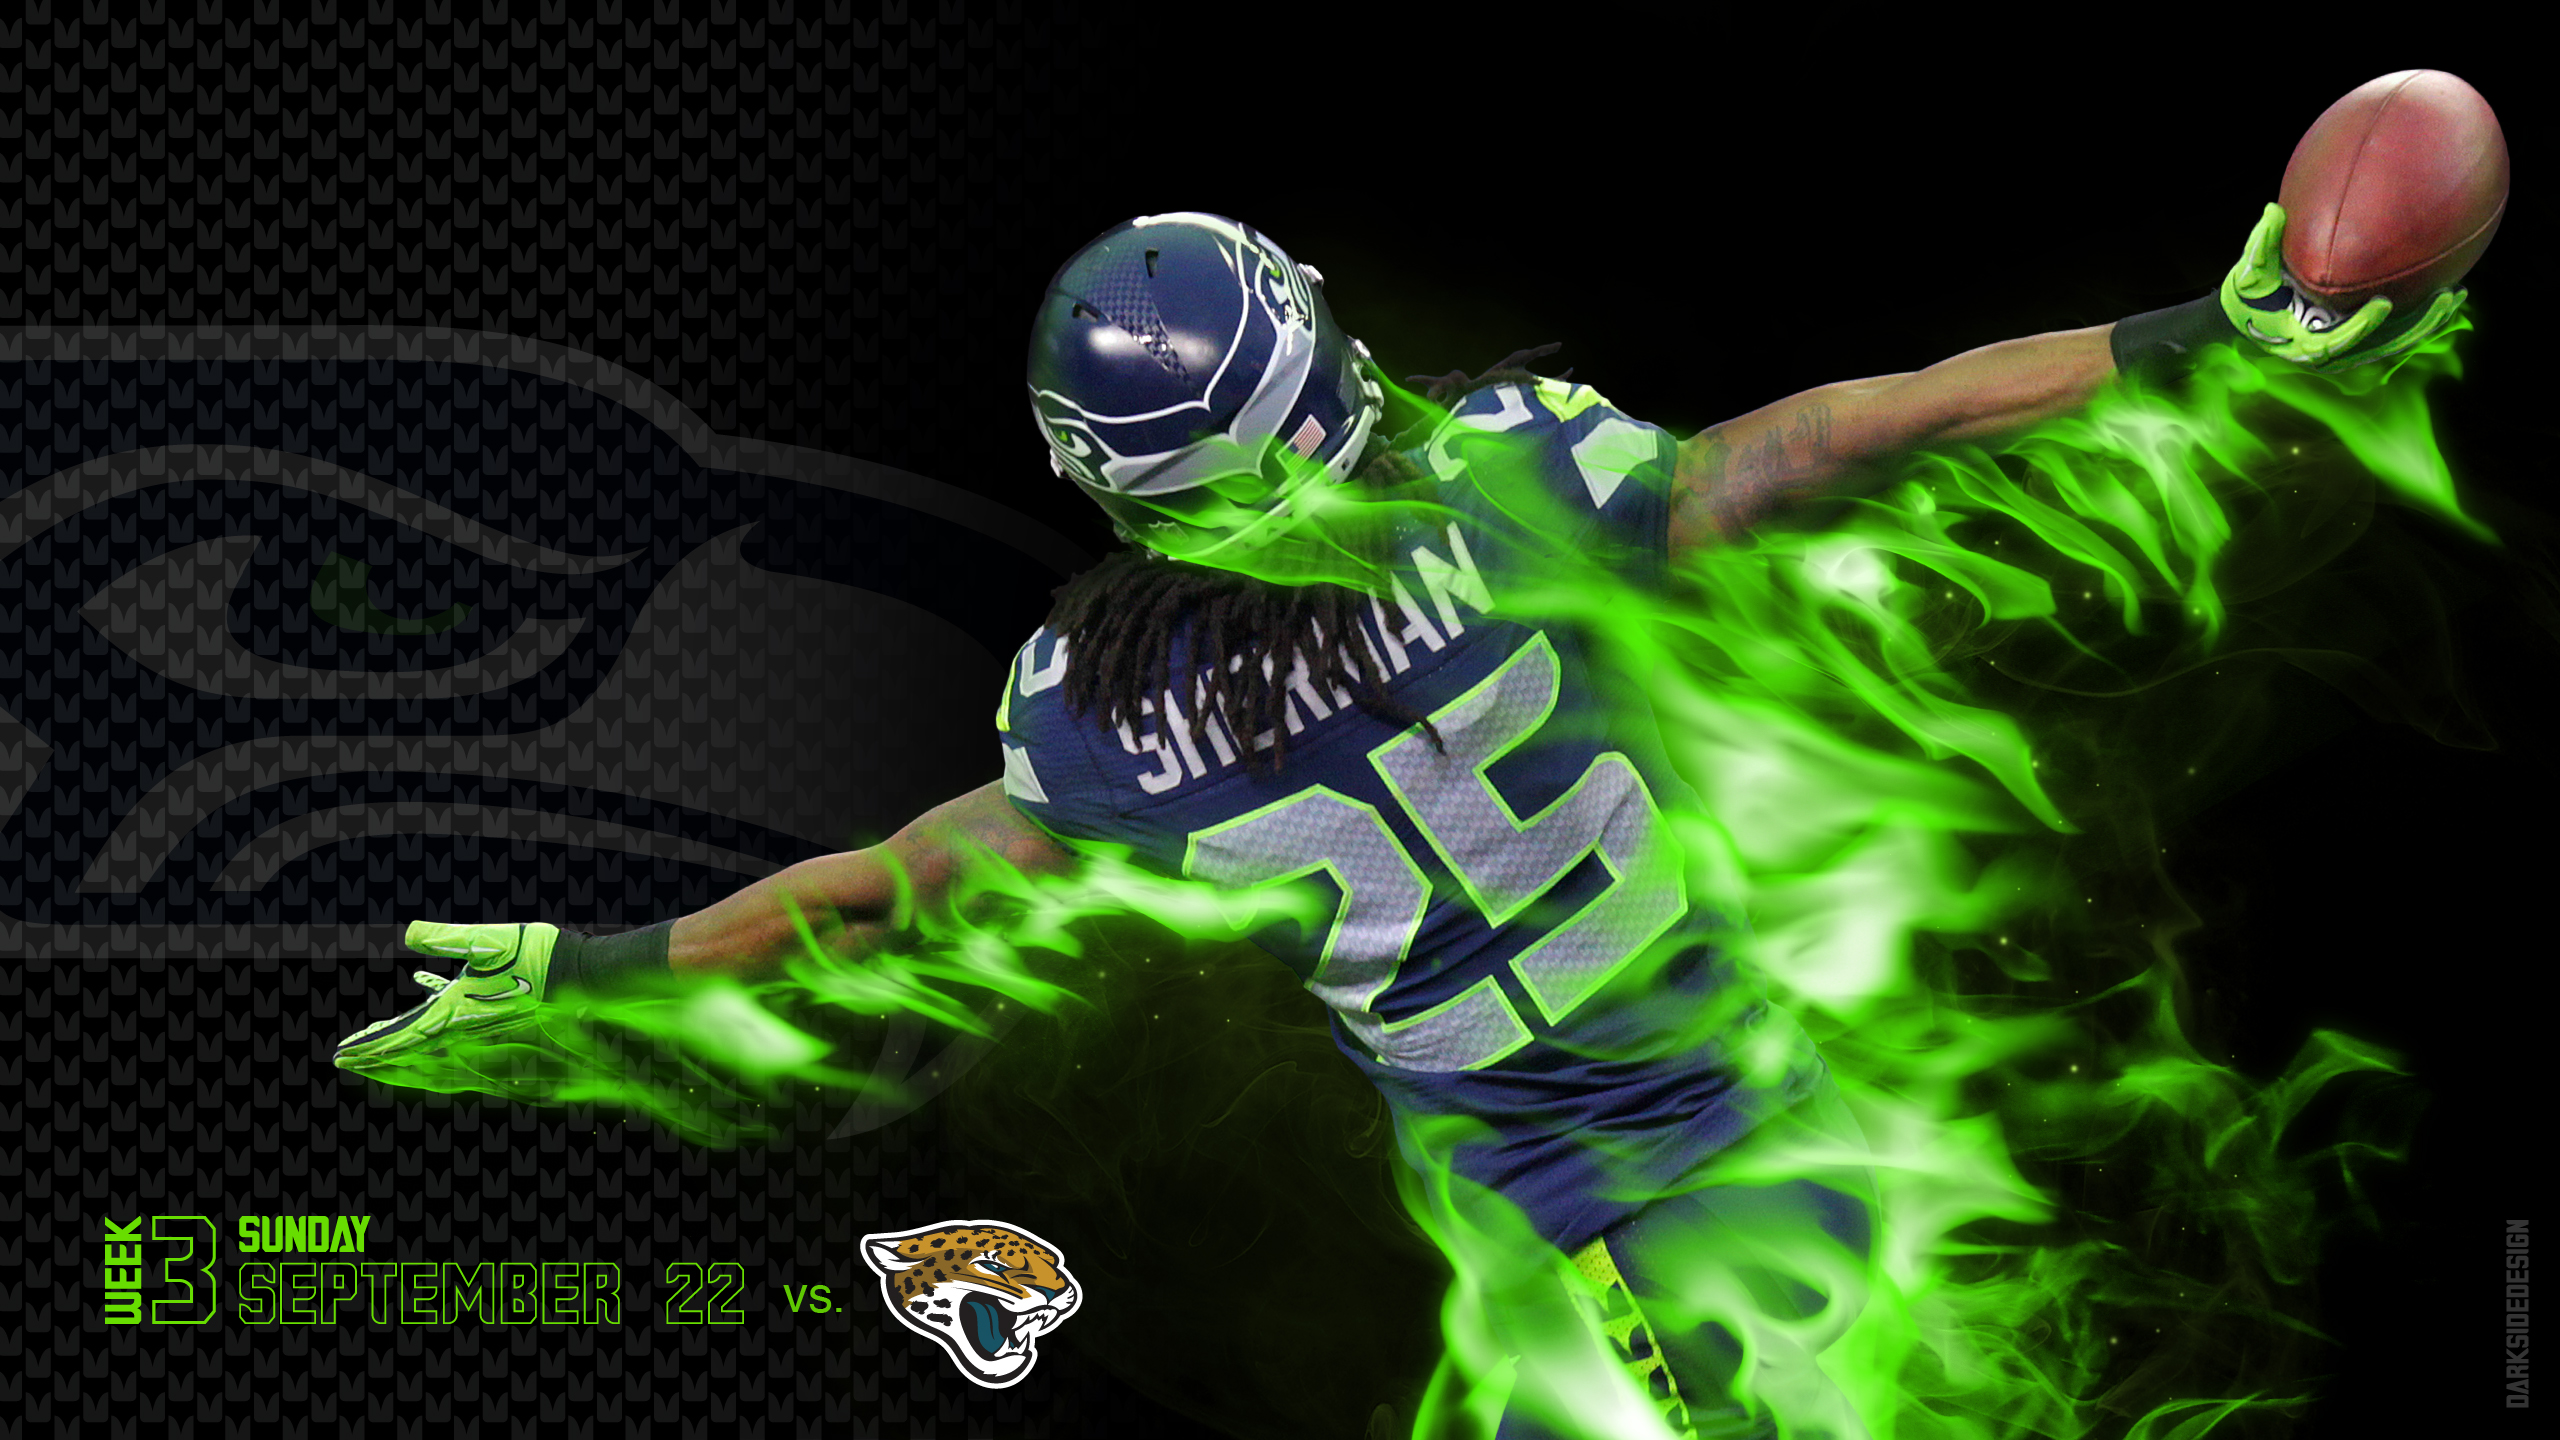 Cool Nfl Players Wallpapers: Cool NFL Players Wallpapers